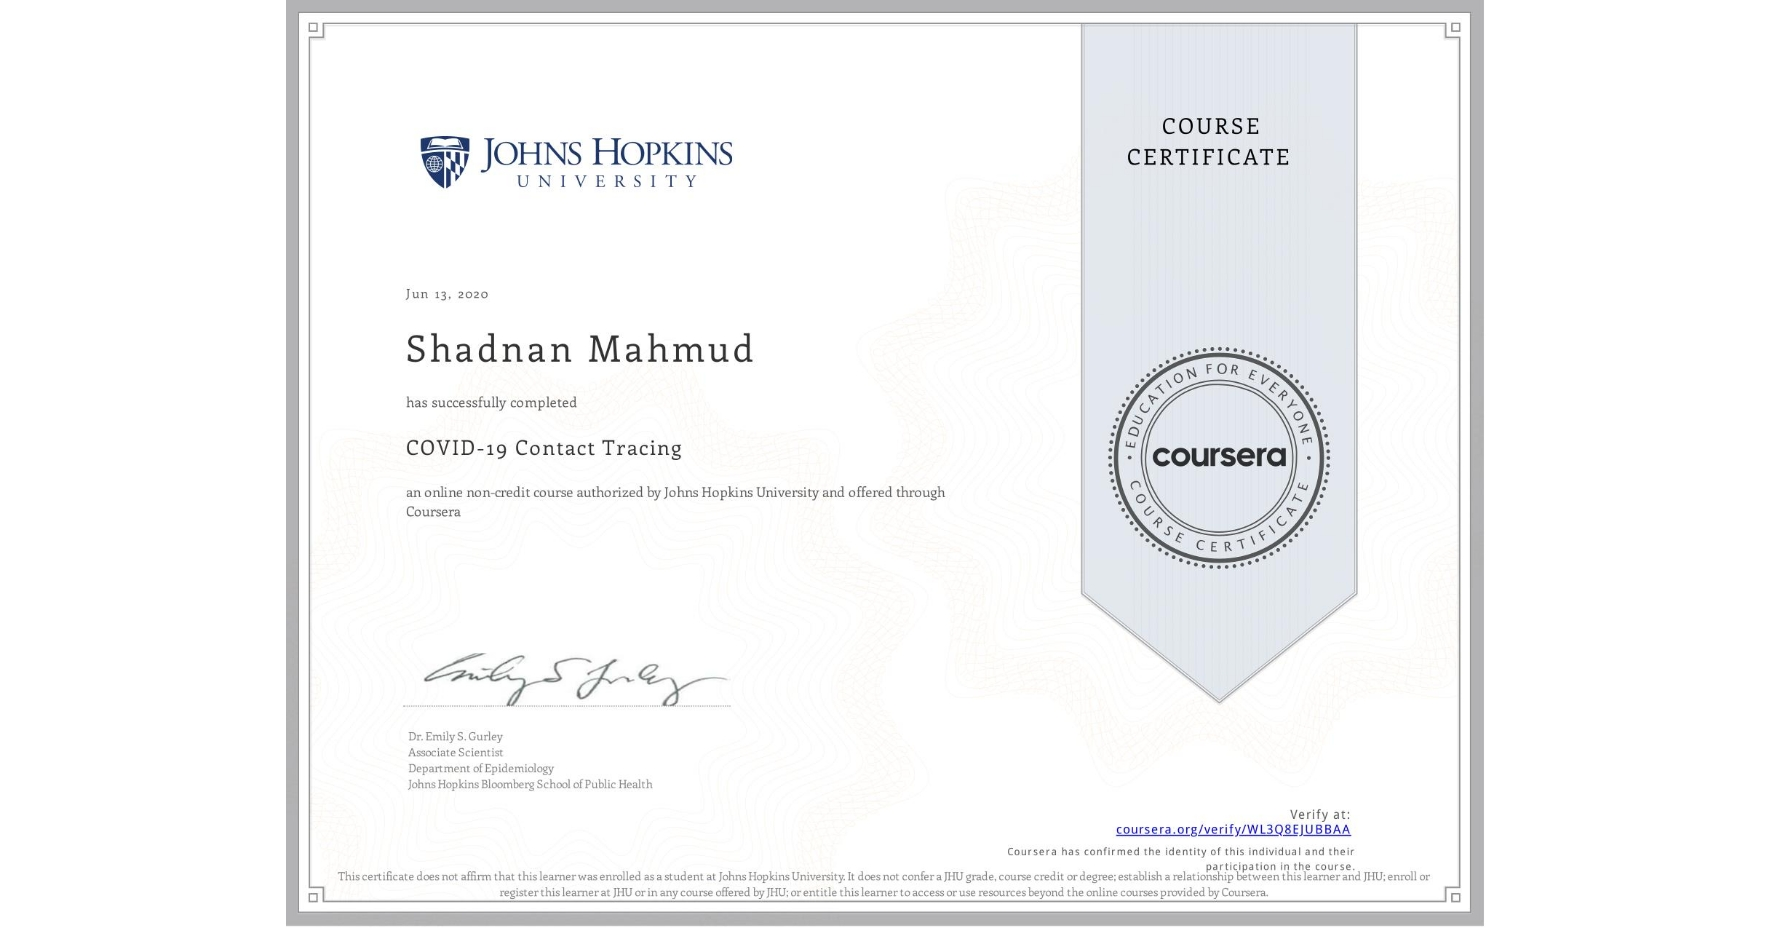 View certificate for Shadnan Mahmud, COVID-19 Contact Tracing, an online non-credit course authorized by Johns Hopkins University and offered through Coursera